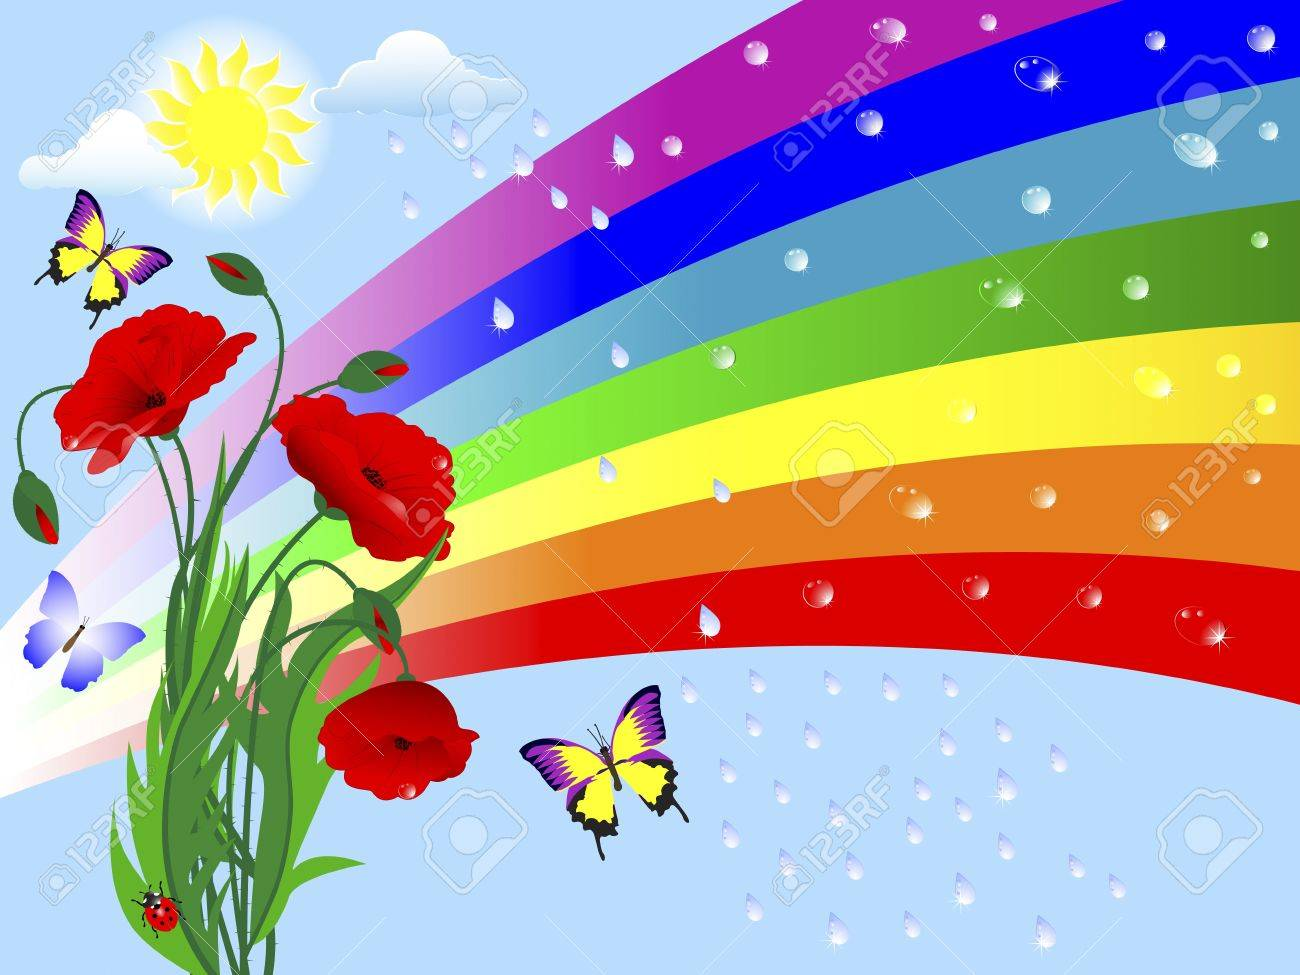 Nature background with a rainbow, poppies and drops. Stock Vector - 17233170